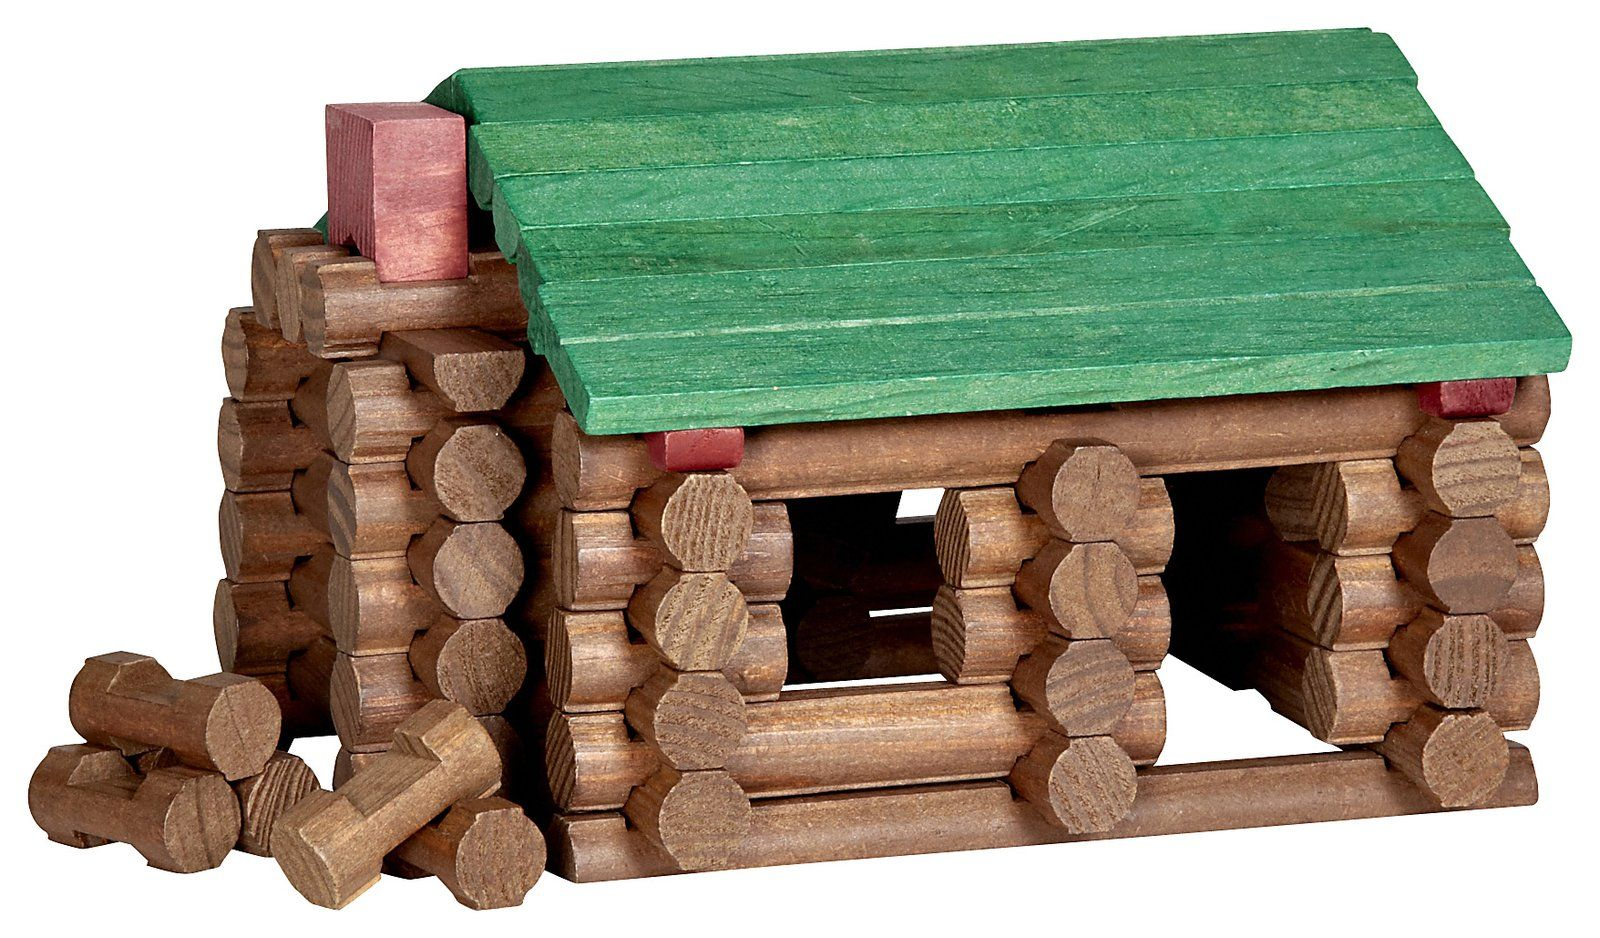 Lincoln Logs! These were some of my favorite toys for